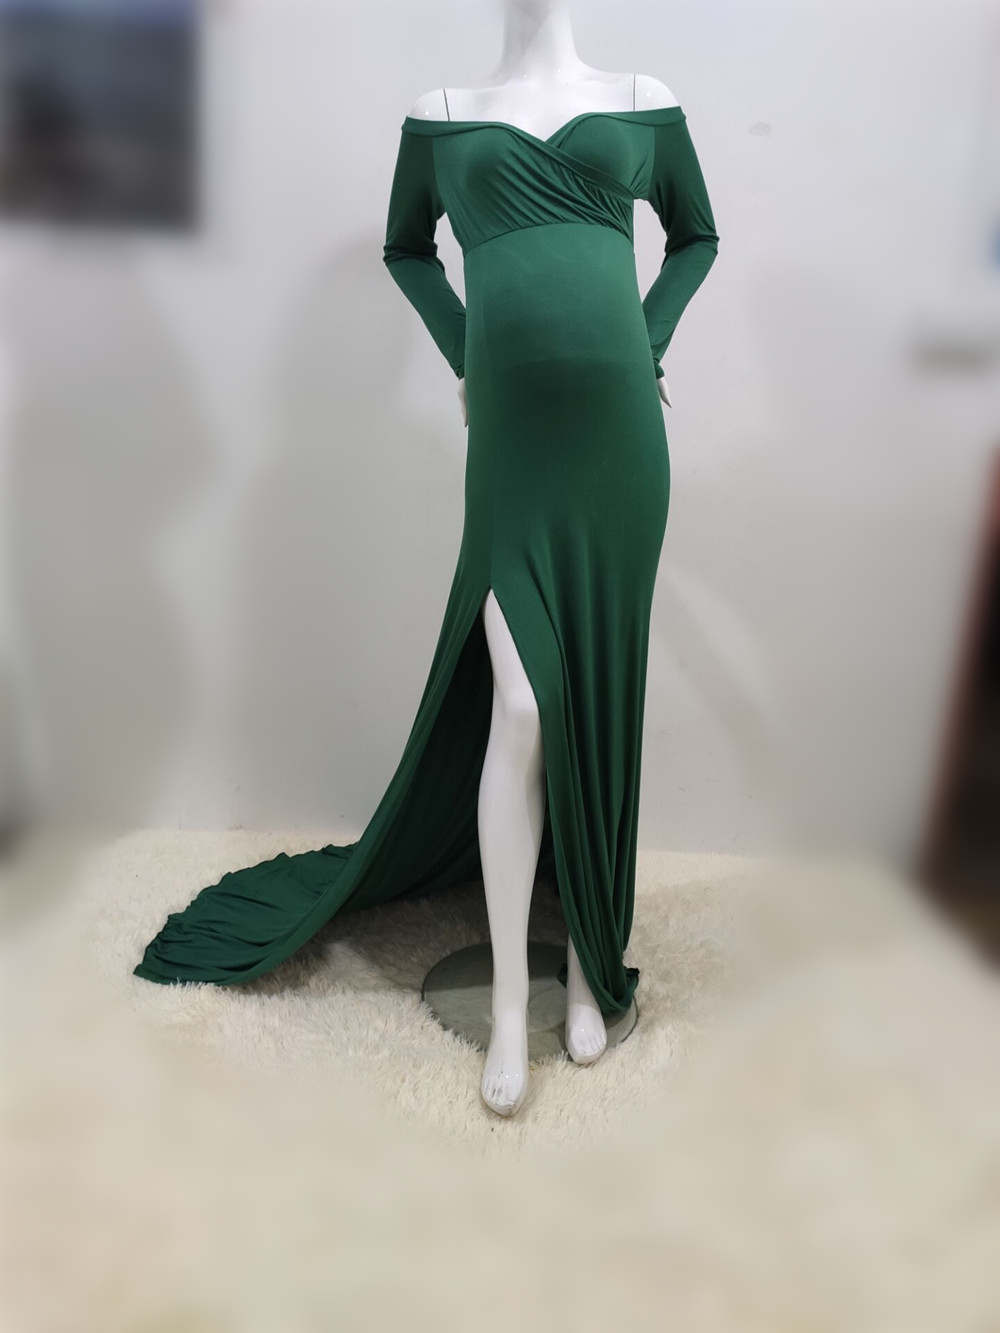 Sexy Shoulderless Maternity Dresses For Photo Shoot Maxi Gown Split Side Women Pregnant Photography Props Long Pregnancy Dress (8)